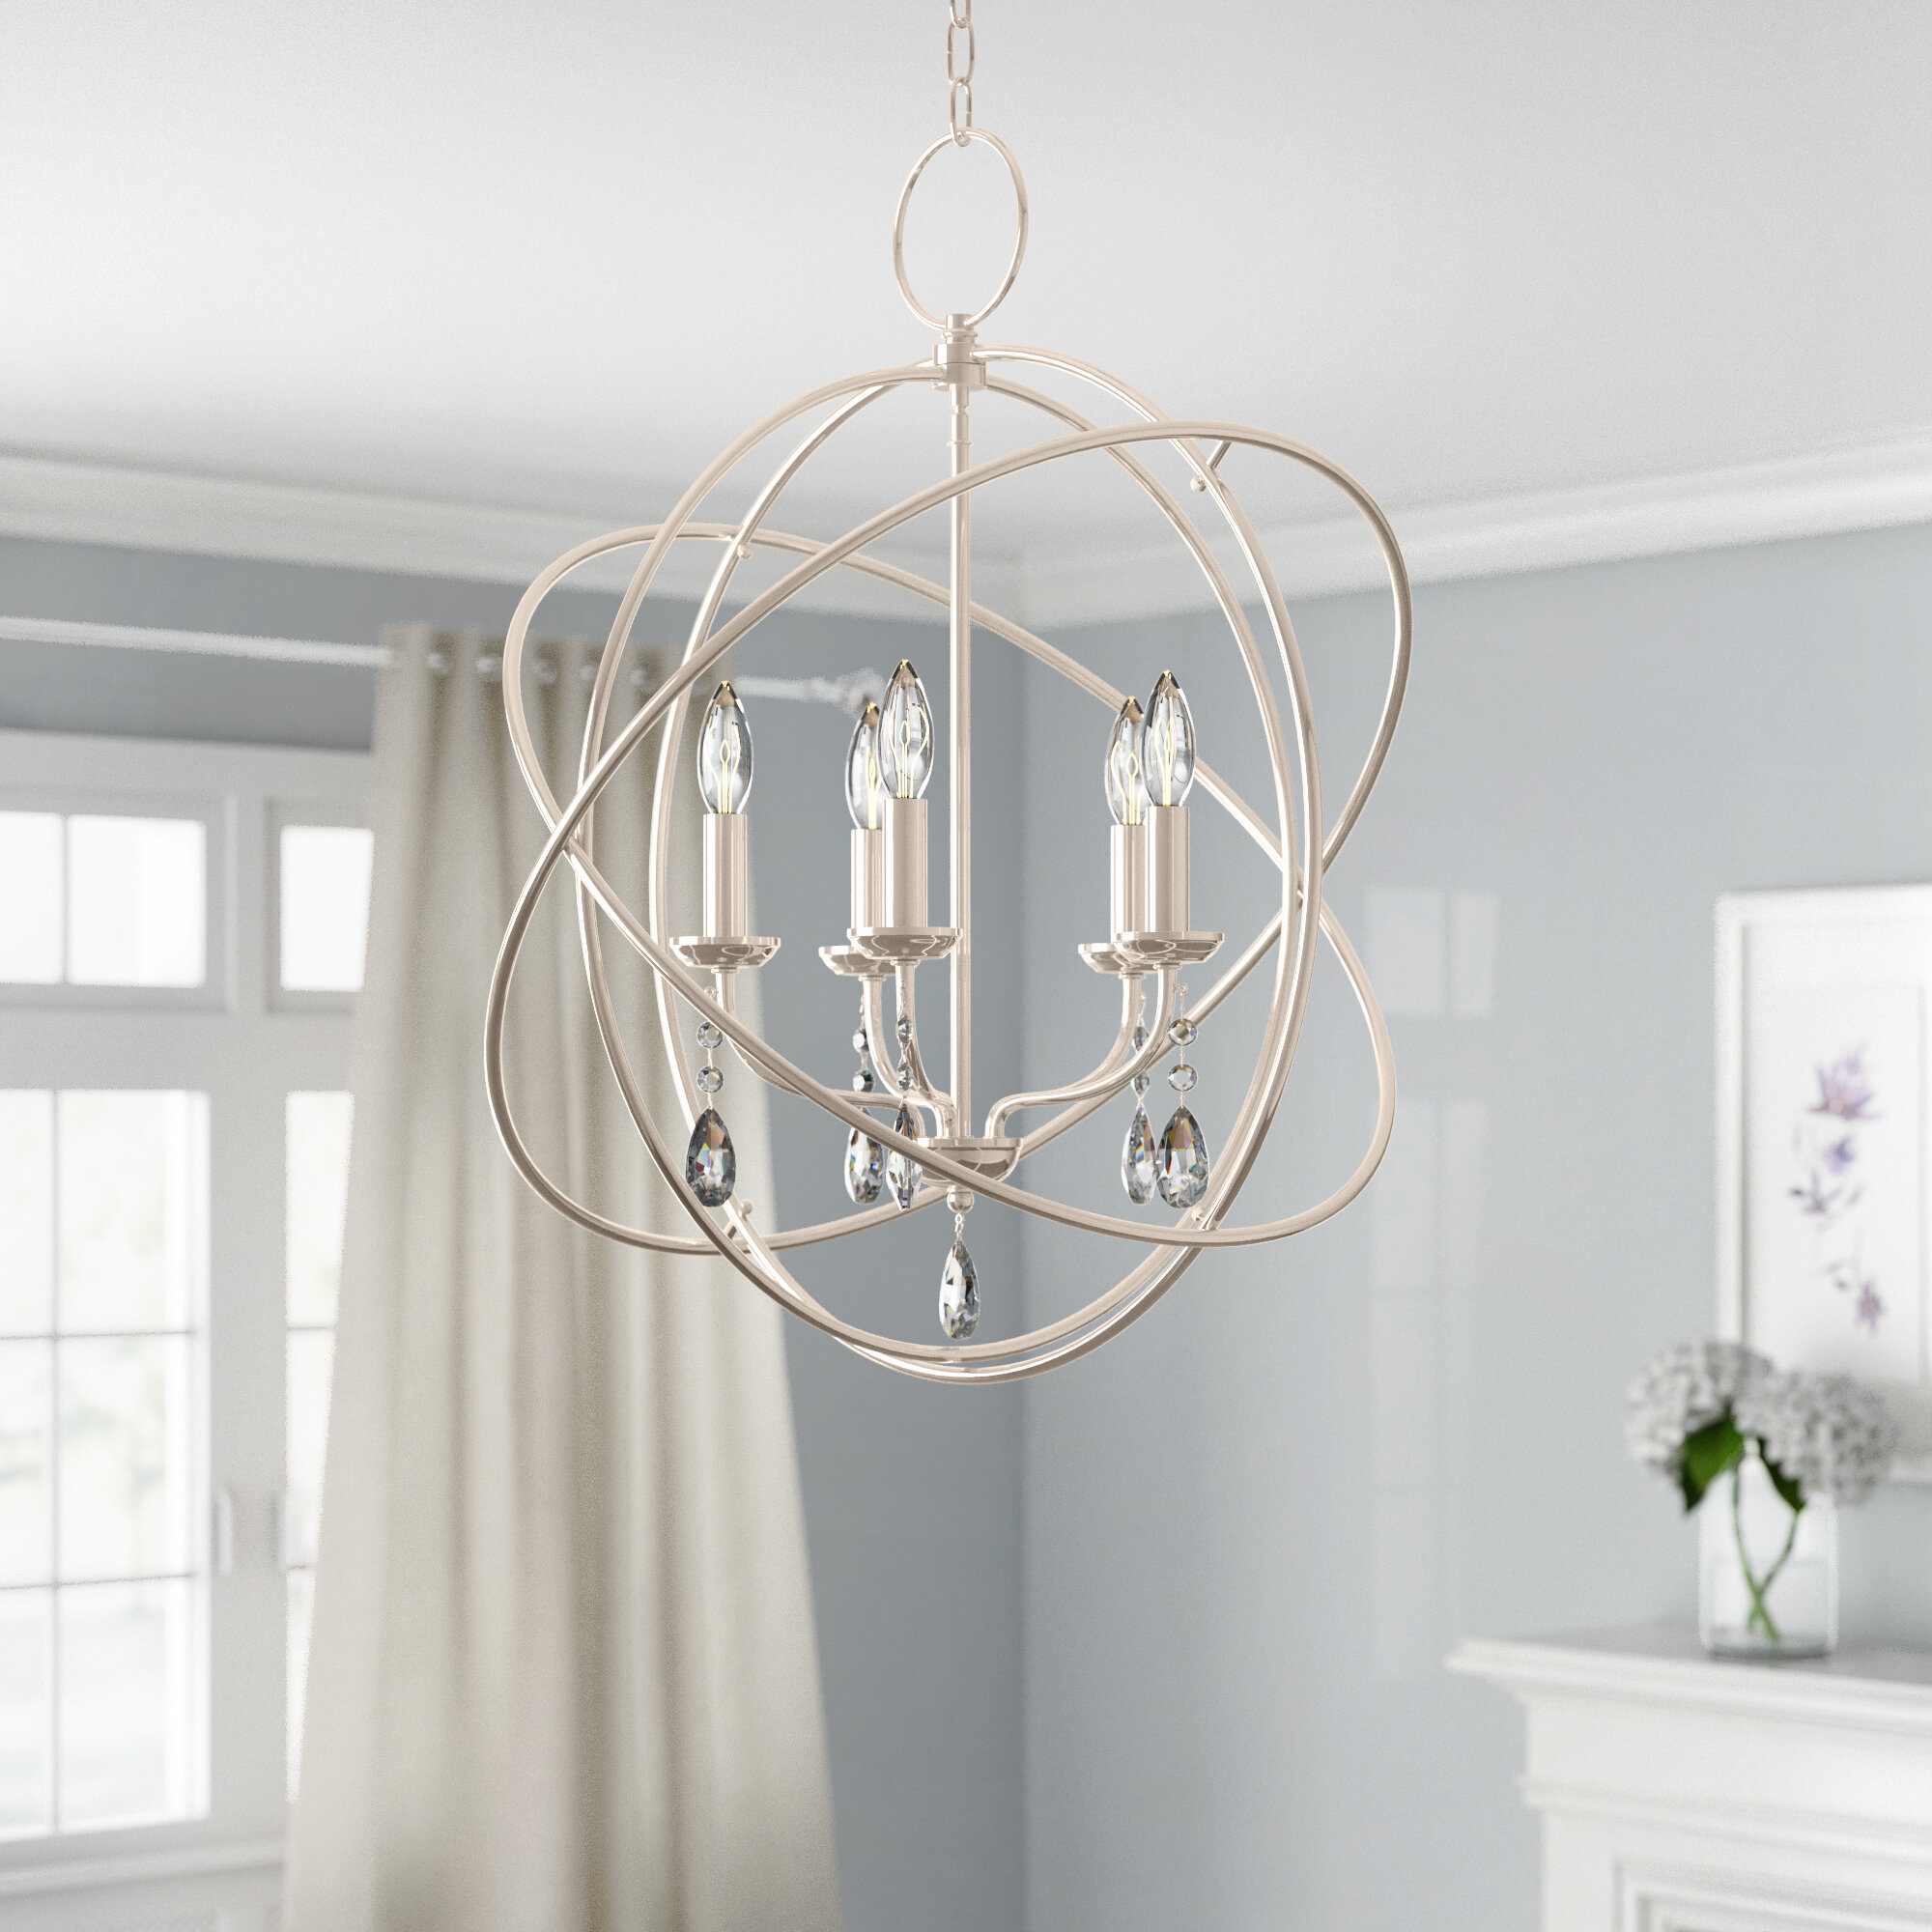 Auberta 5 Light Globe Chandelier With Verlene Foyer 5 Light Globe Chandeliers (View 5 of 30)